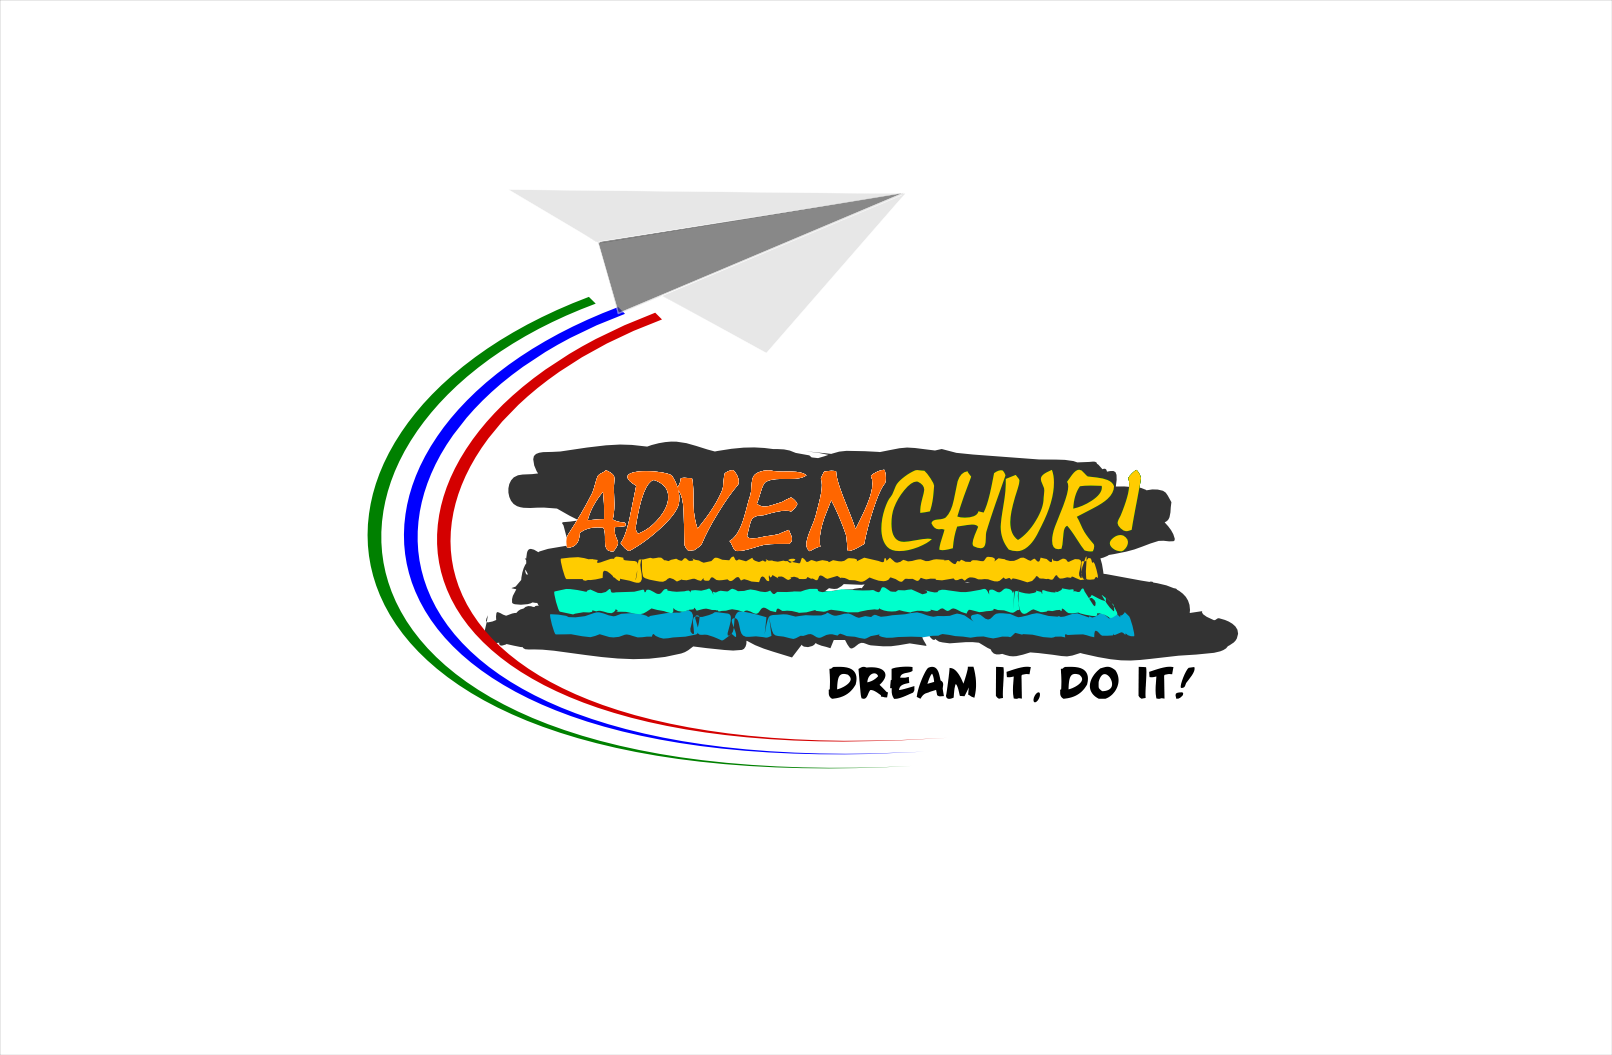 Logo Design by Joseph calunsag Cagaanan - Entry No. 48 in the Logo Design Contest Logo design for fun and exciting experience/adventure business!.